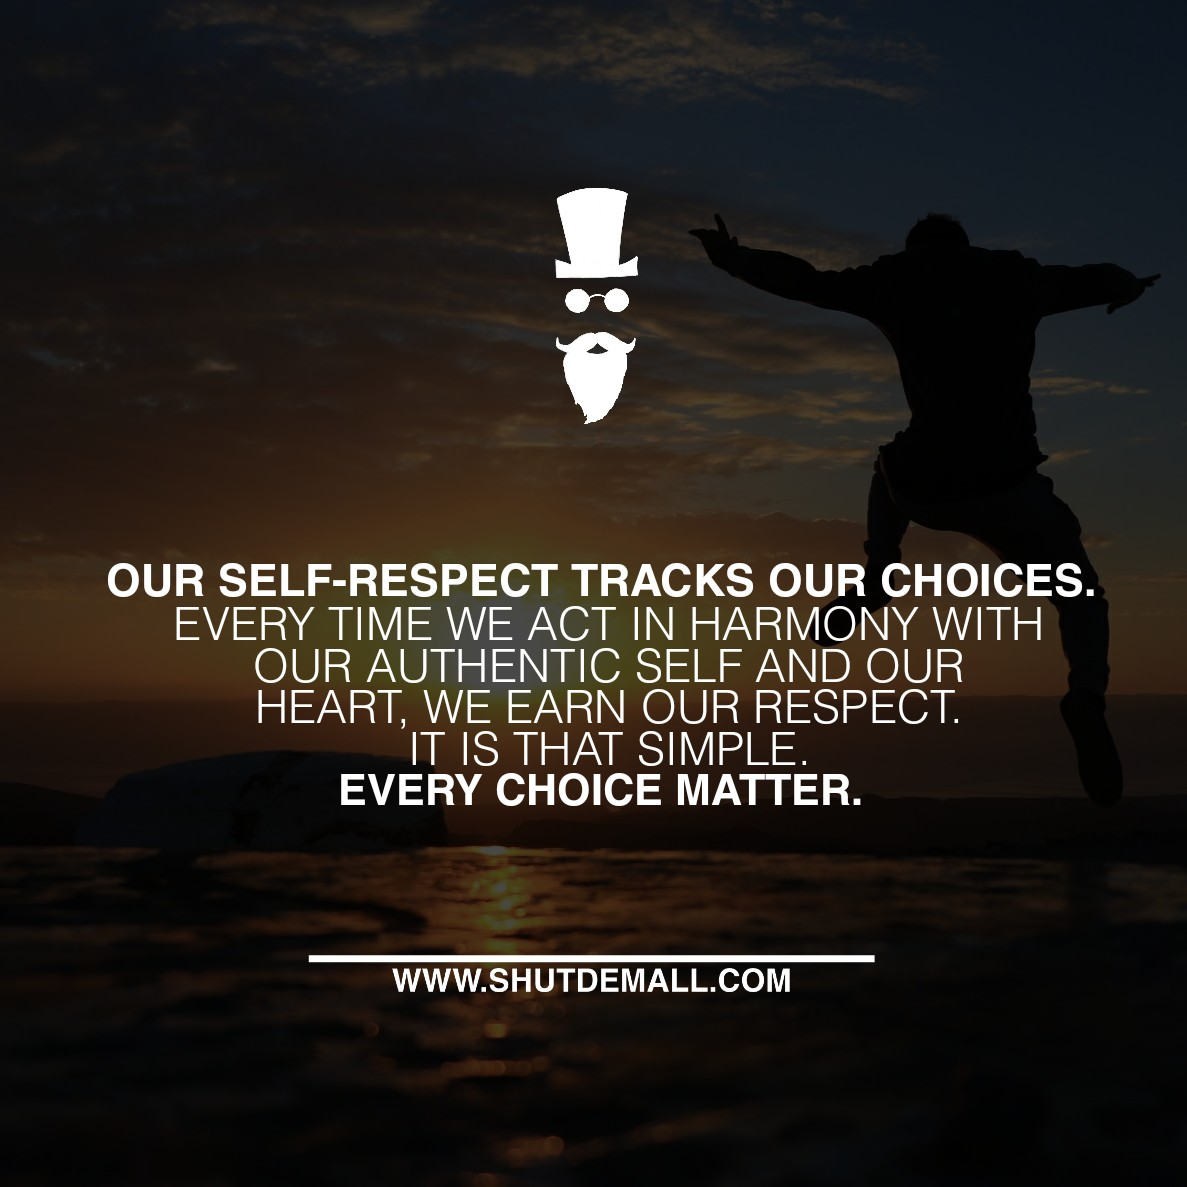 Quotes Related To Respect: 51 Inspirational Quotes About Self-Esteem And Self-Love